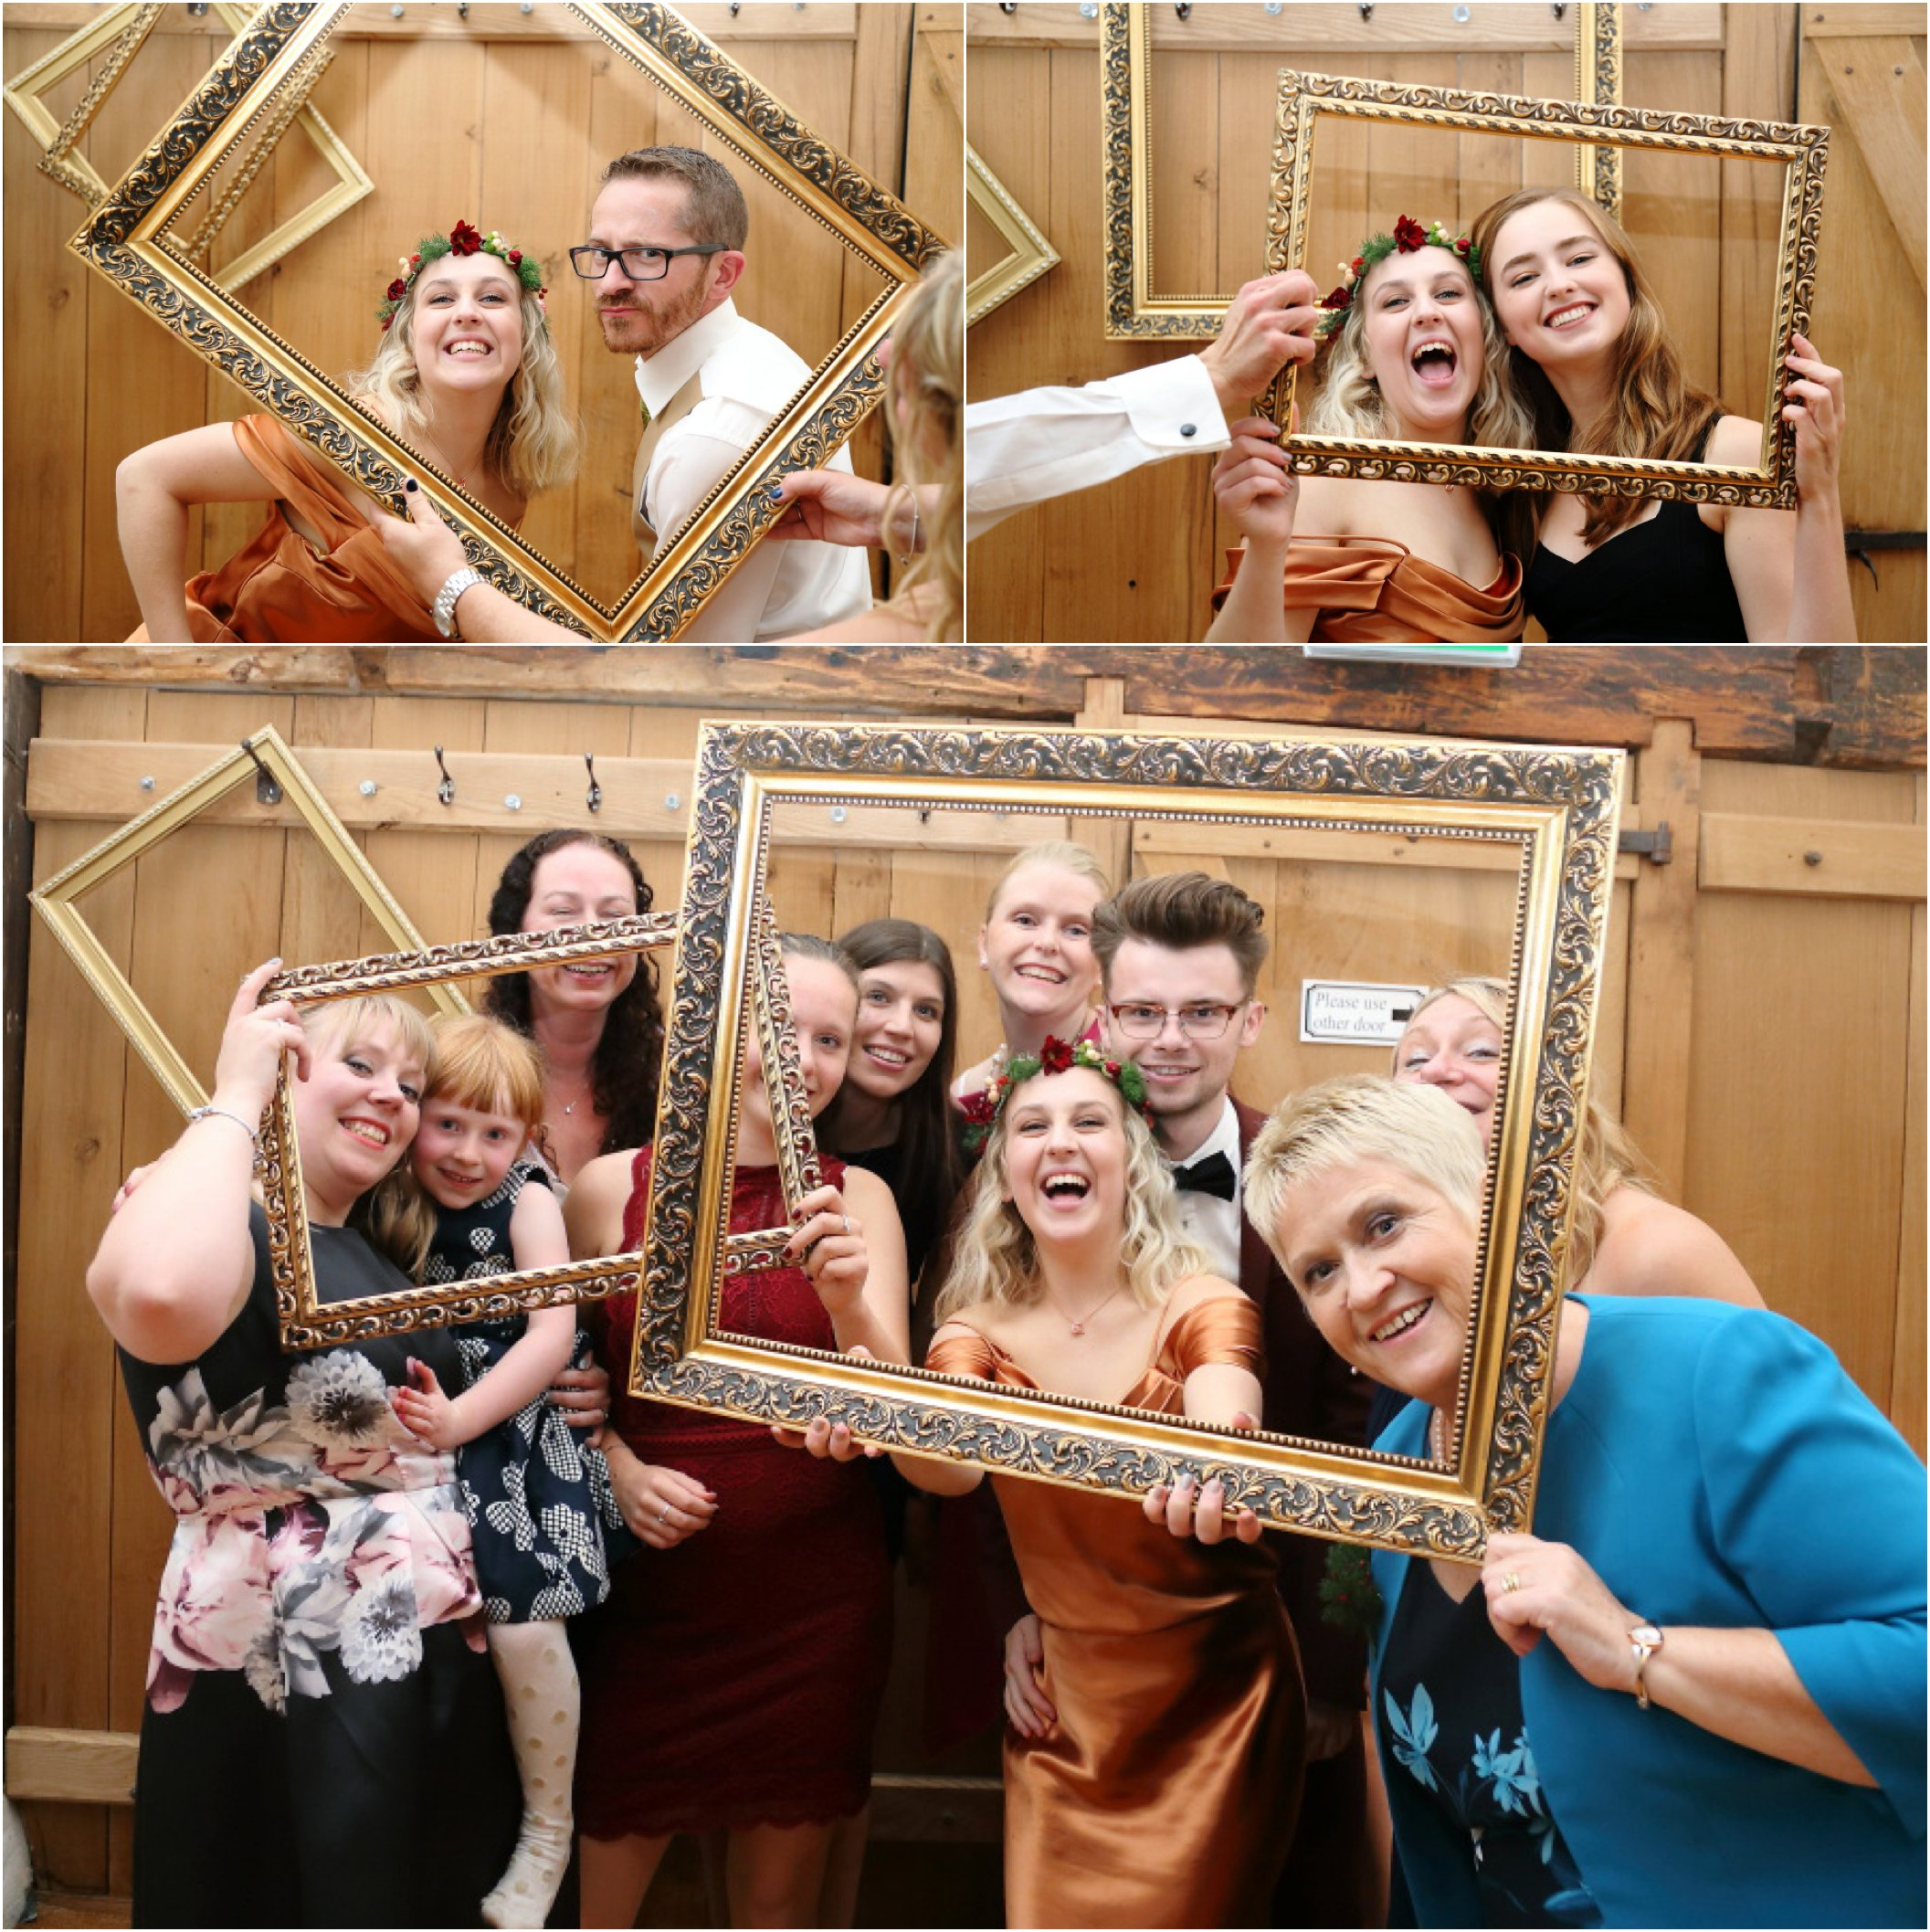 using picture frames at make shift photo booth, moreves barn wedding photography